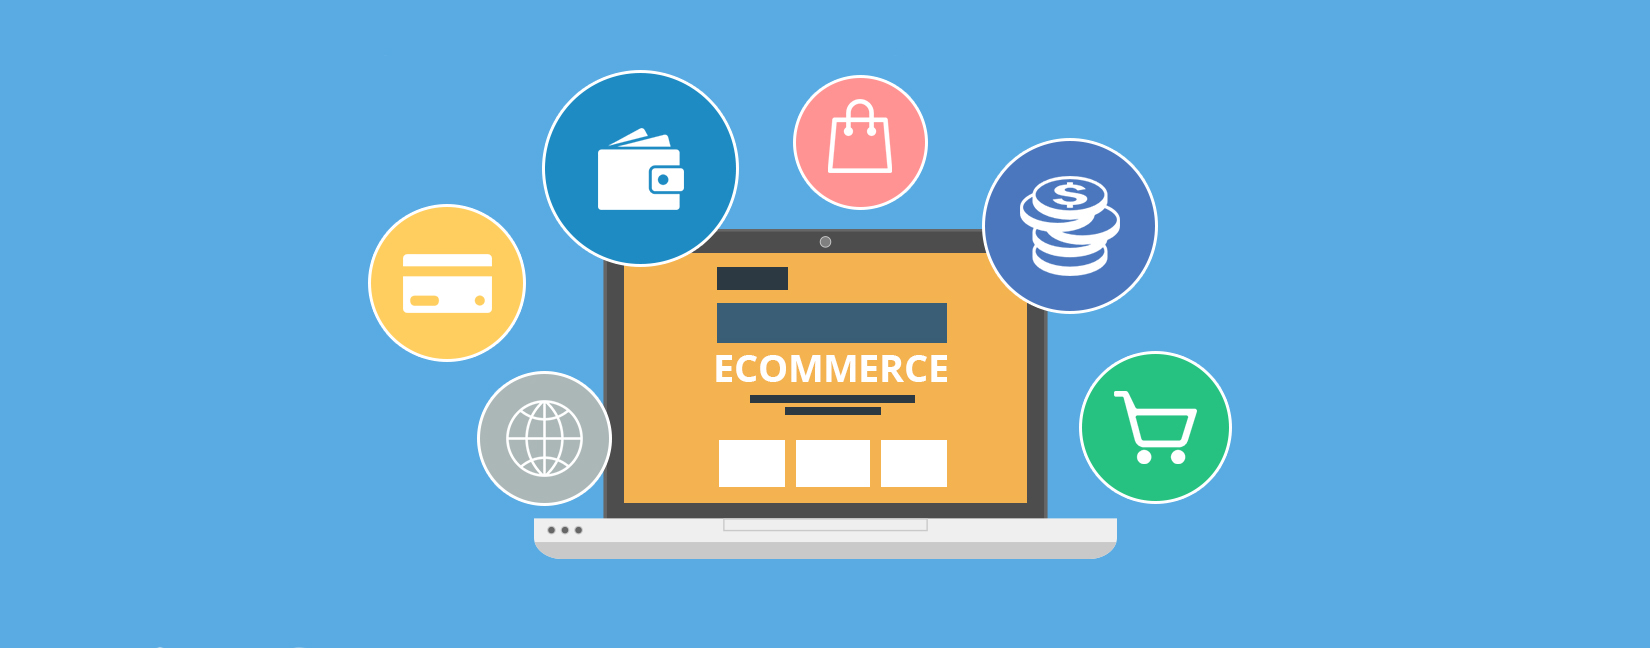 Looking for an eStore Software Development Tool to create an eCommerce Shopping Cart?